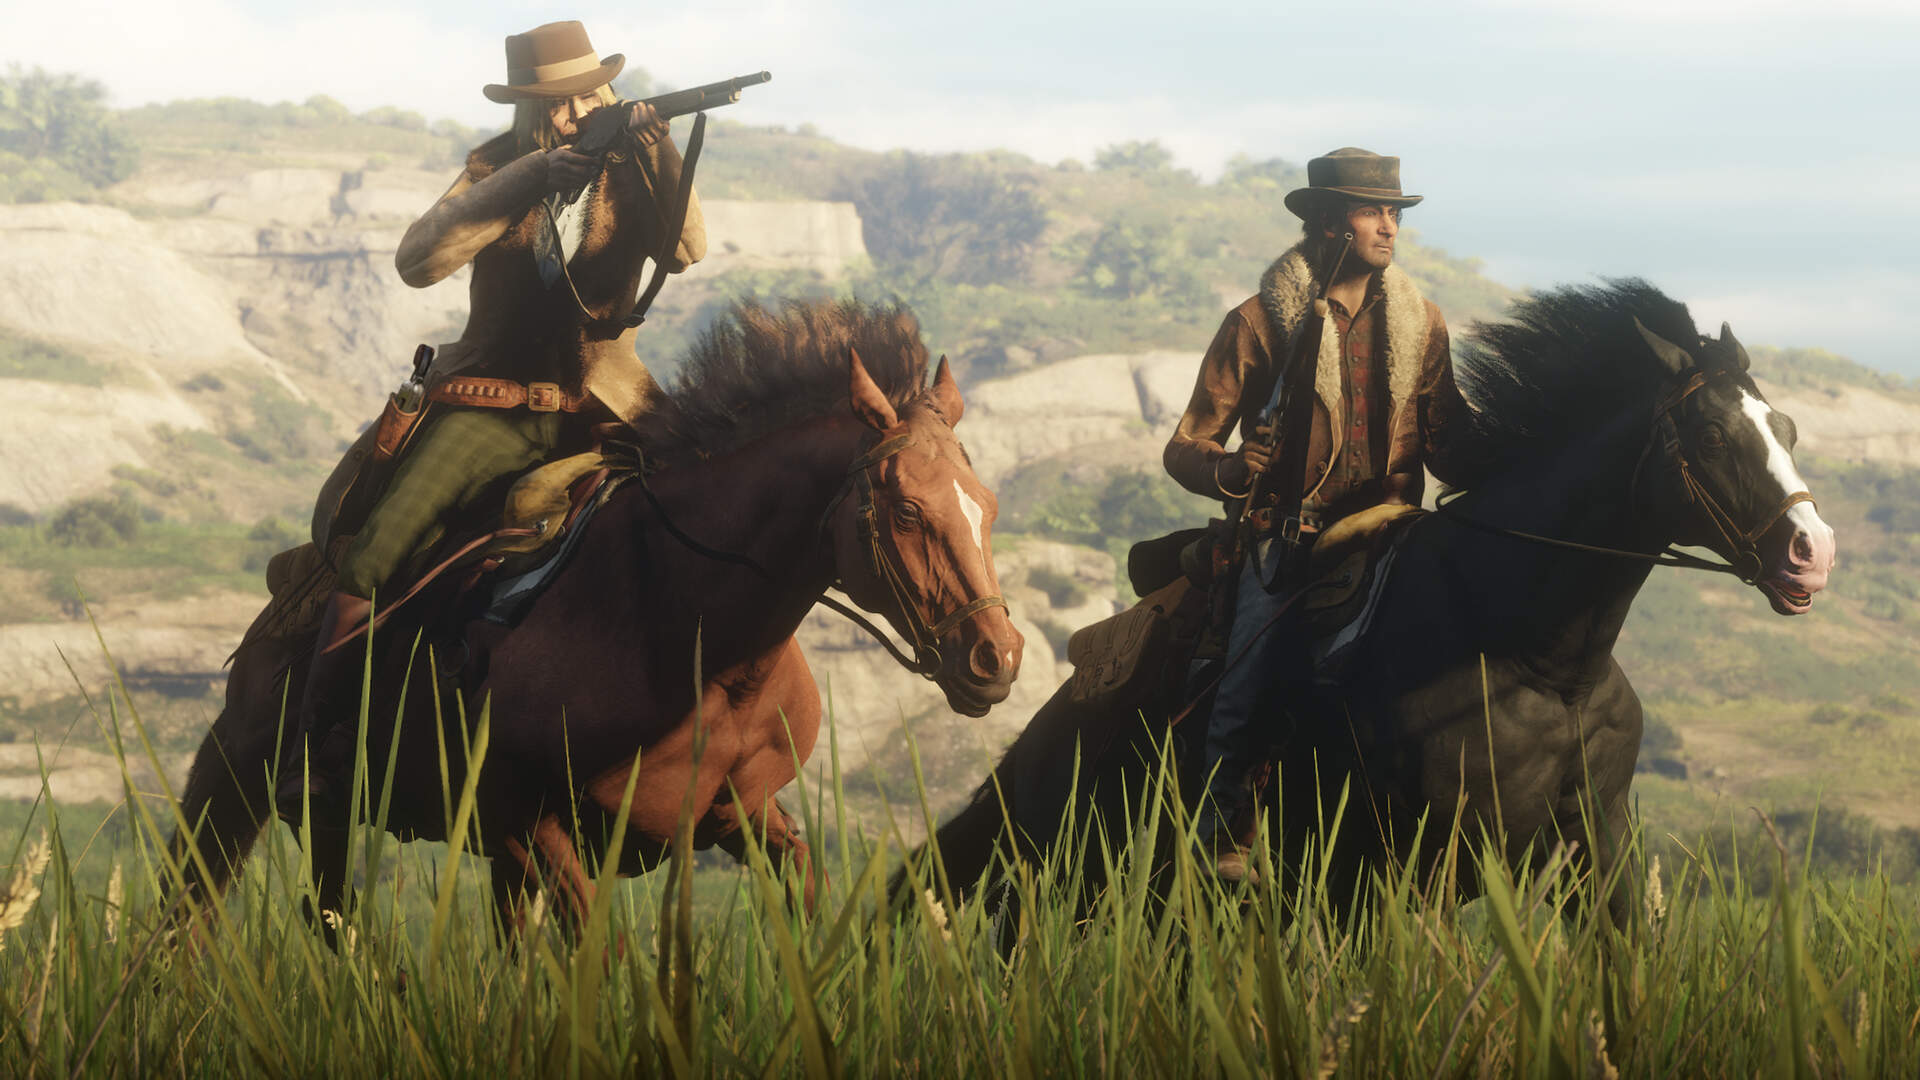 Upcoming Red Dead Online Updates Are Aimed Directly at Griefers